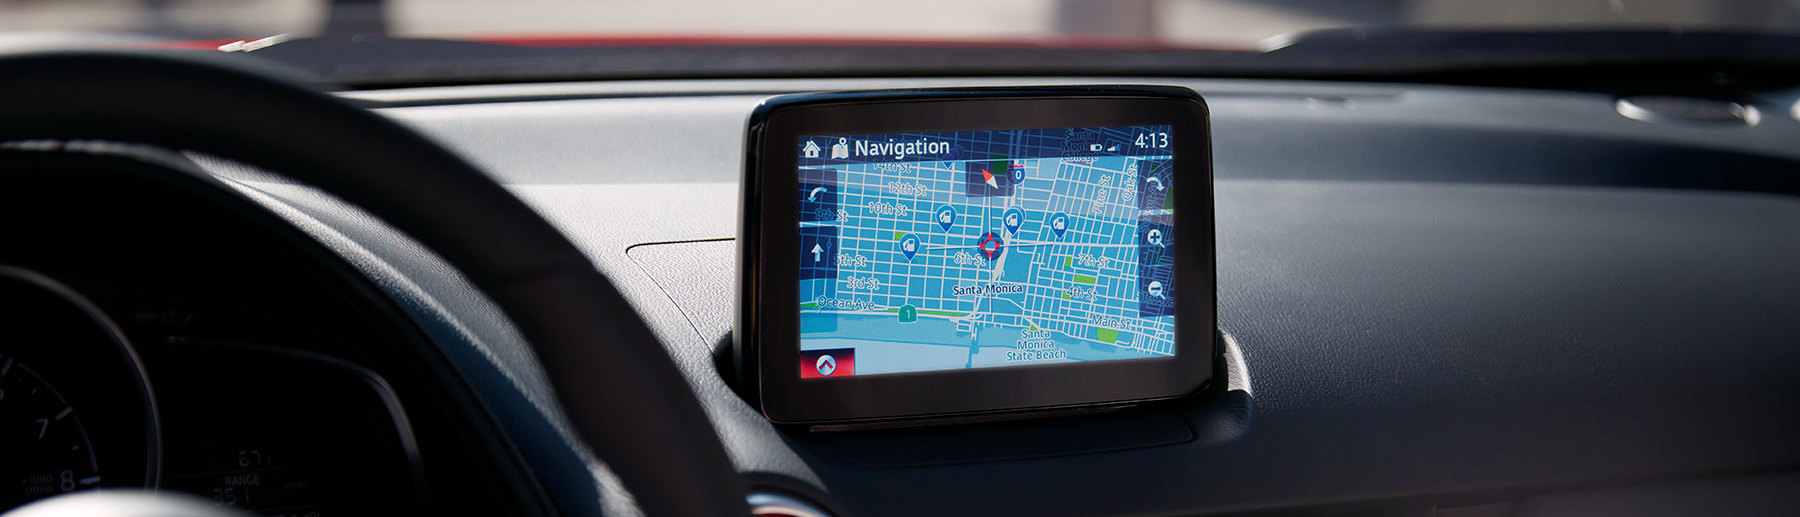 Navigation in the 2019 Mazda CX-3